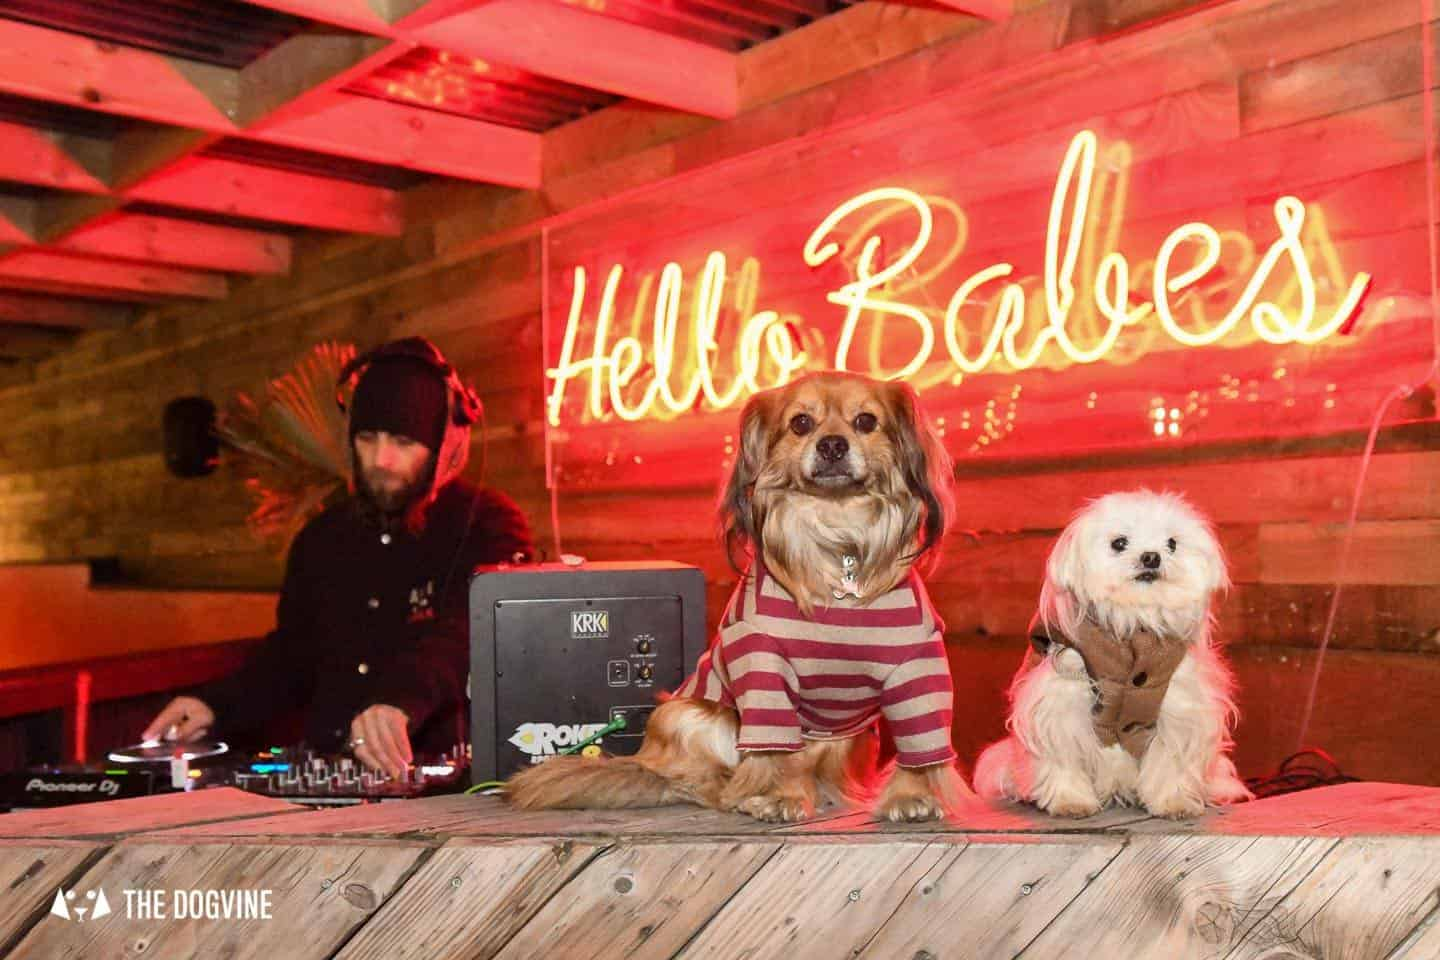 5 Reasons To Go To The Dog-friendly Bussey Rooftop Bar This Winter 16